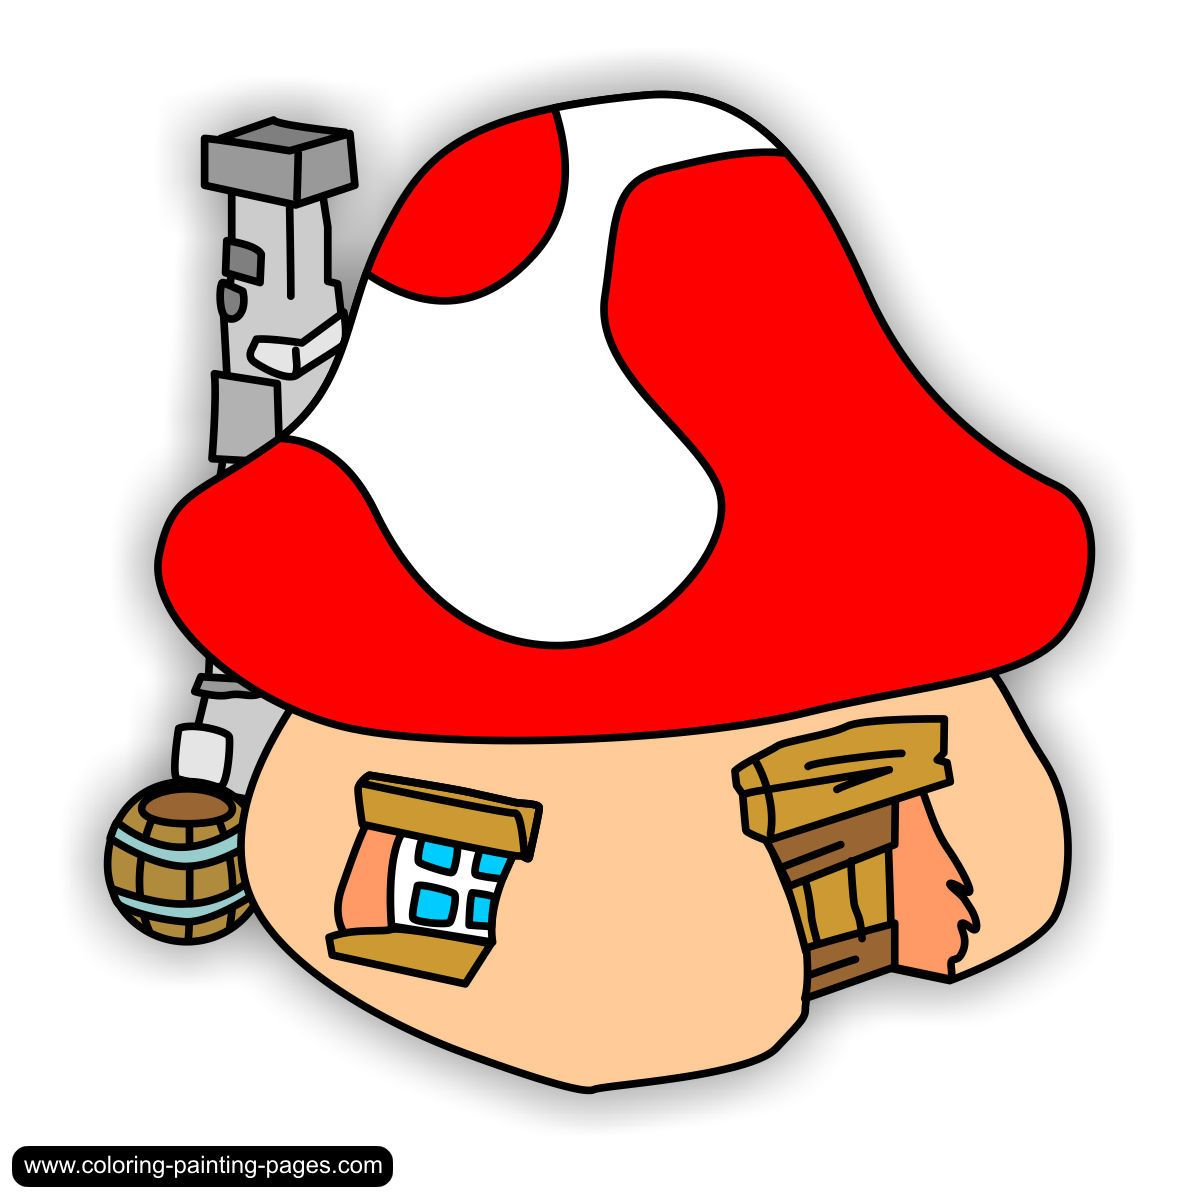 Smurf Village Houses  smurfs  Pinterest  Village houses and House